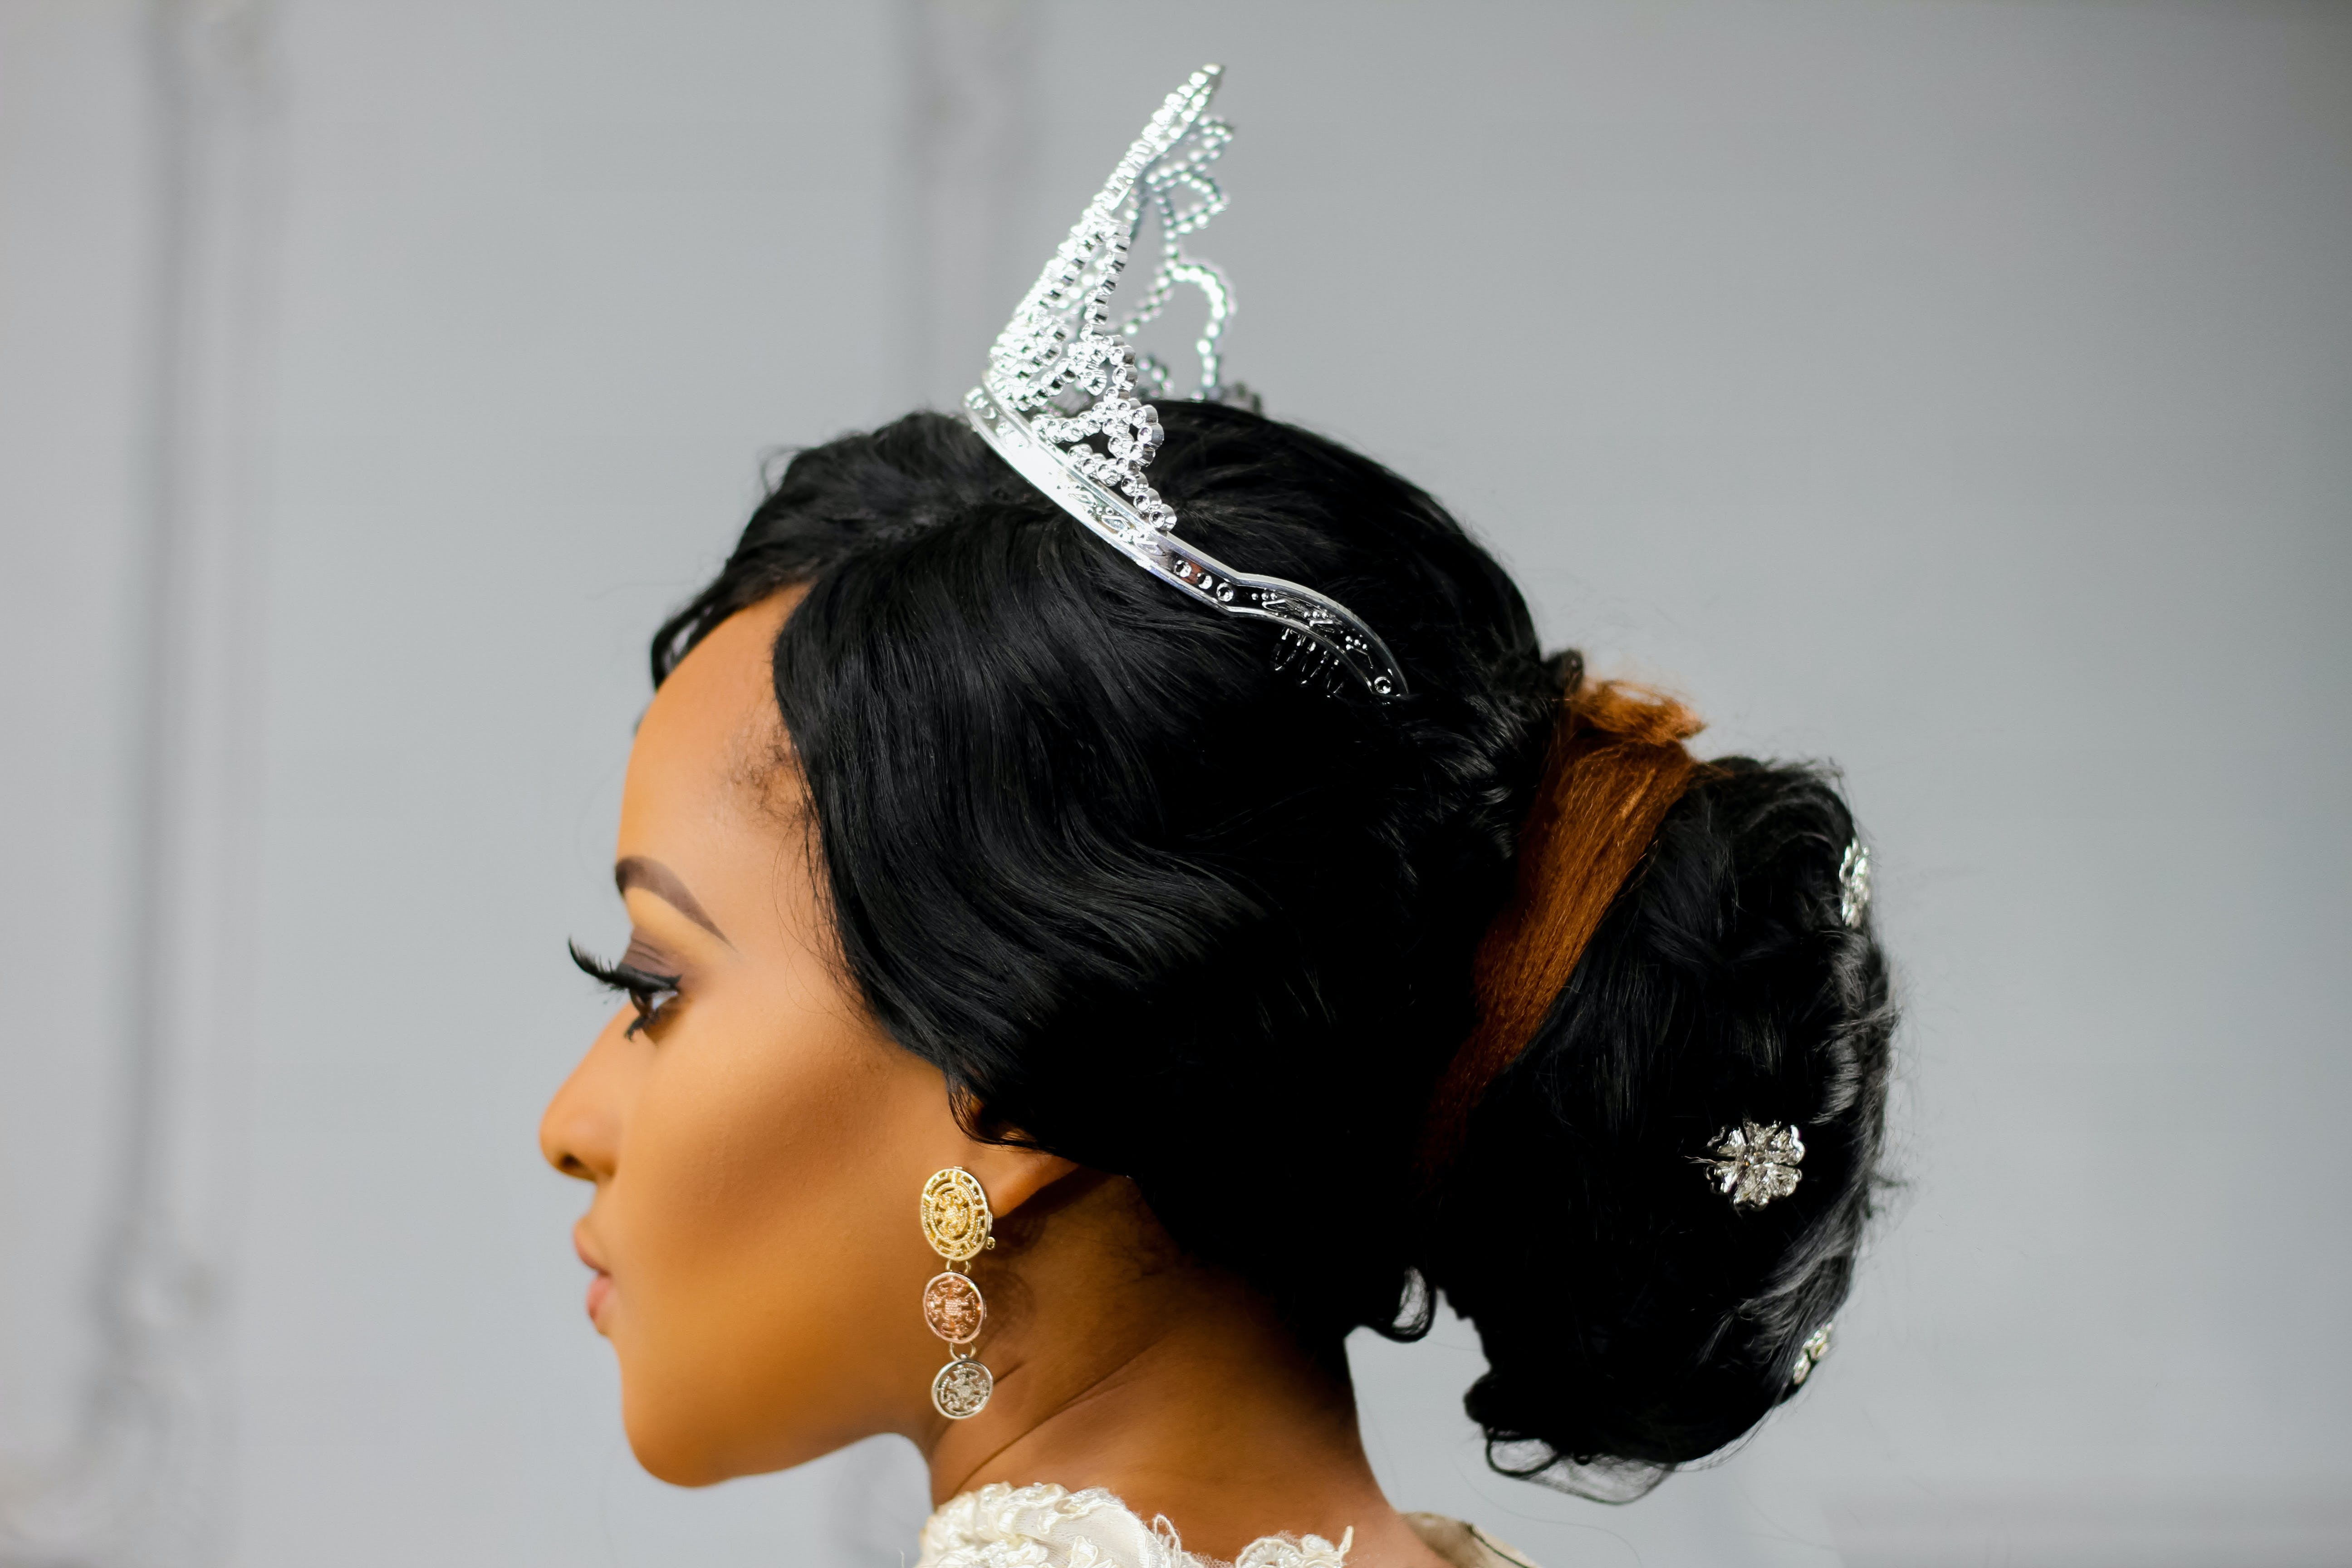 Woman Wearing Silver-colored Crown